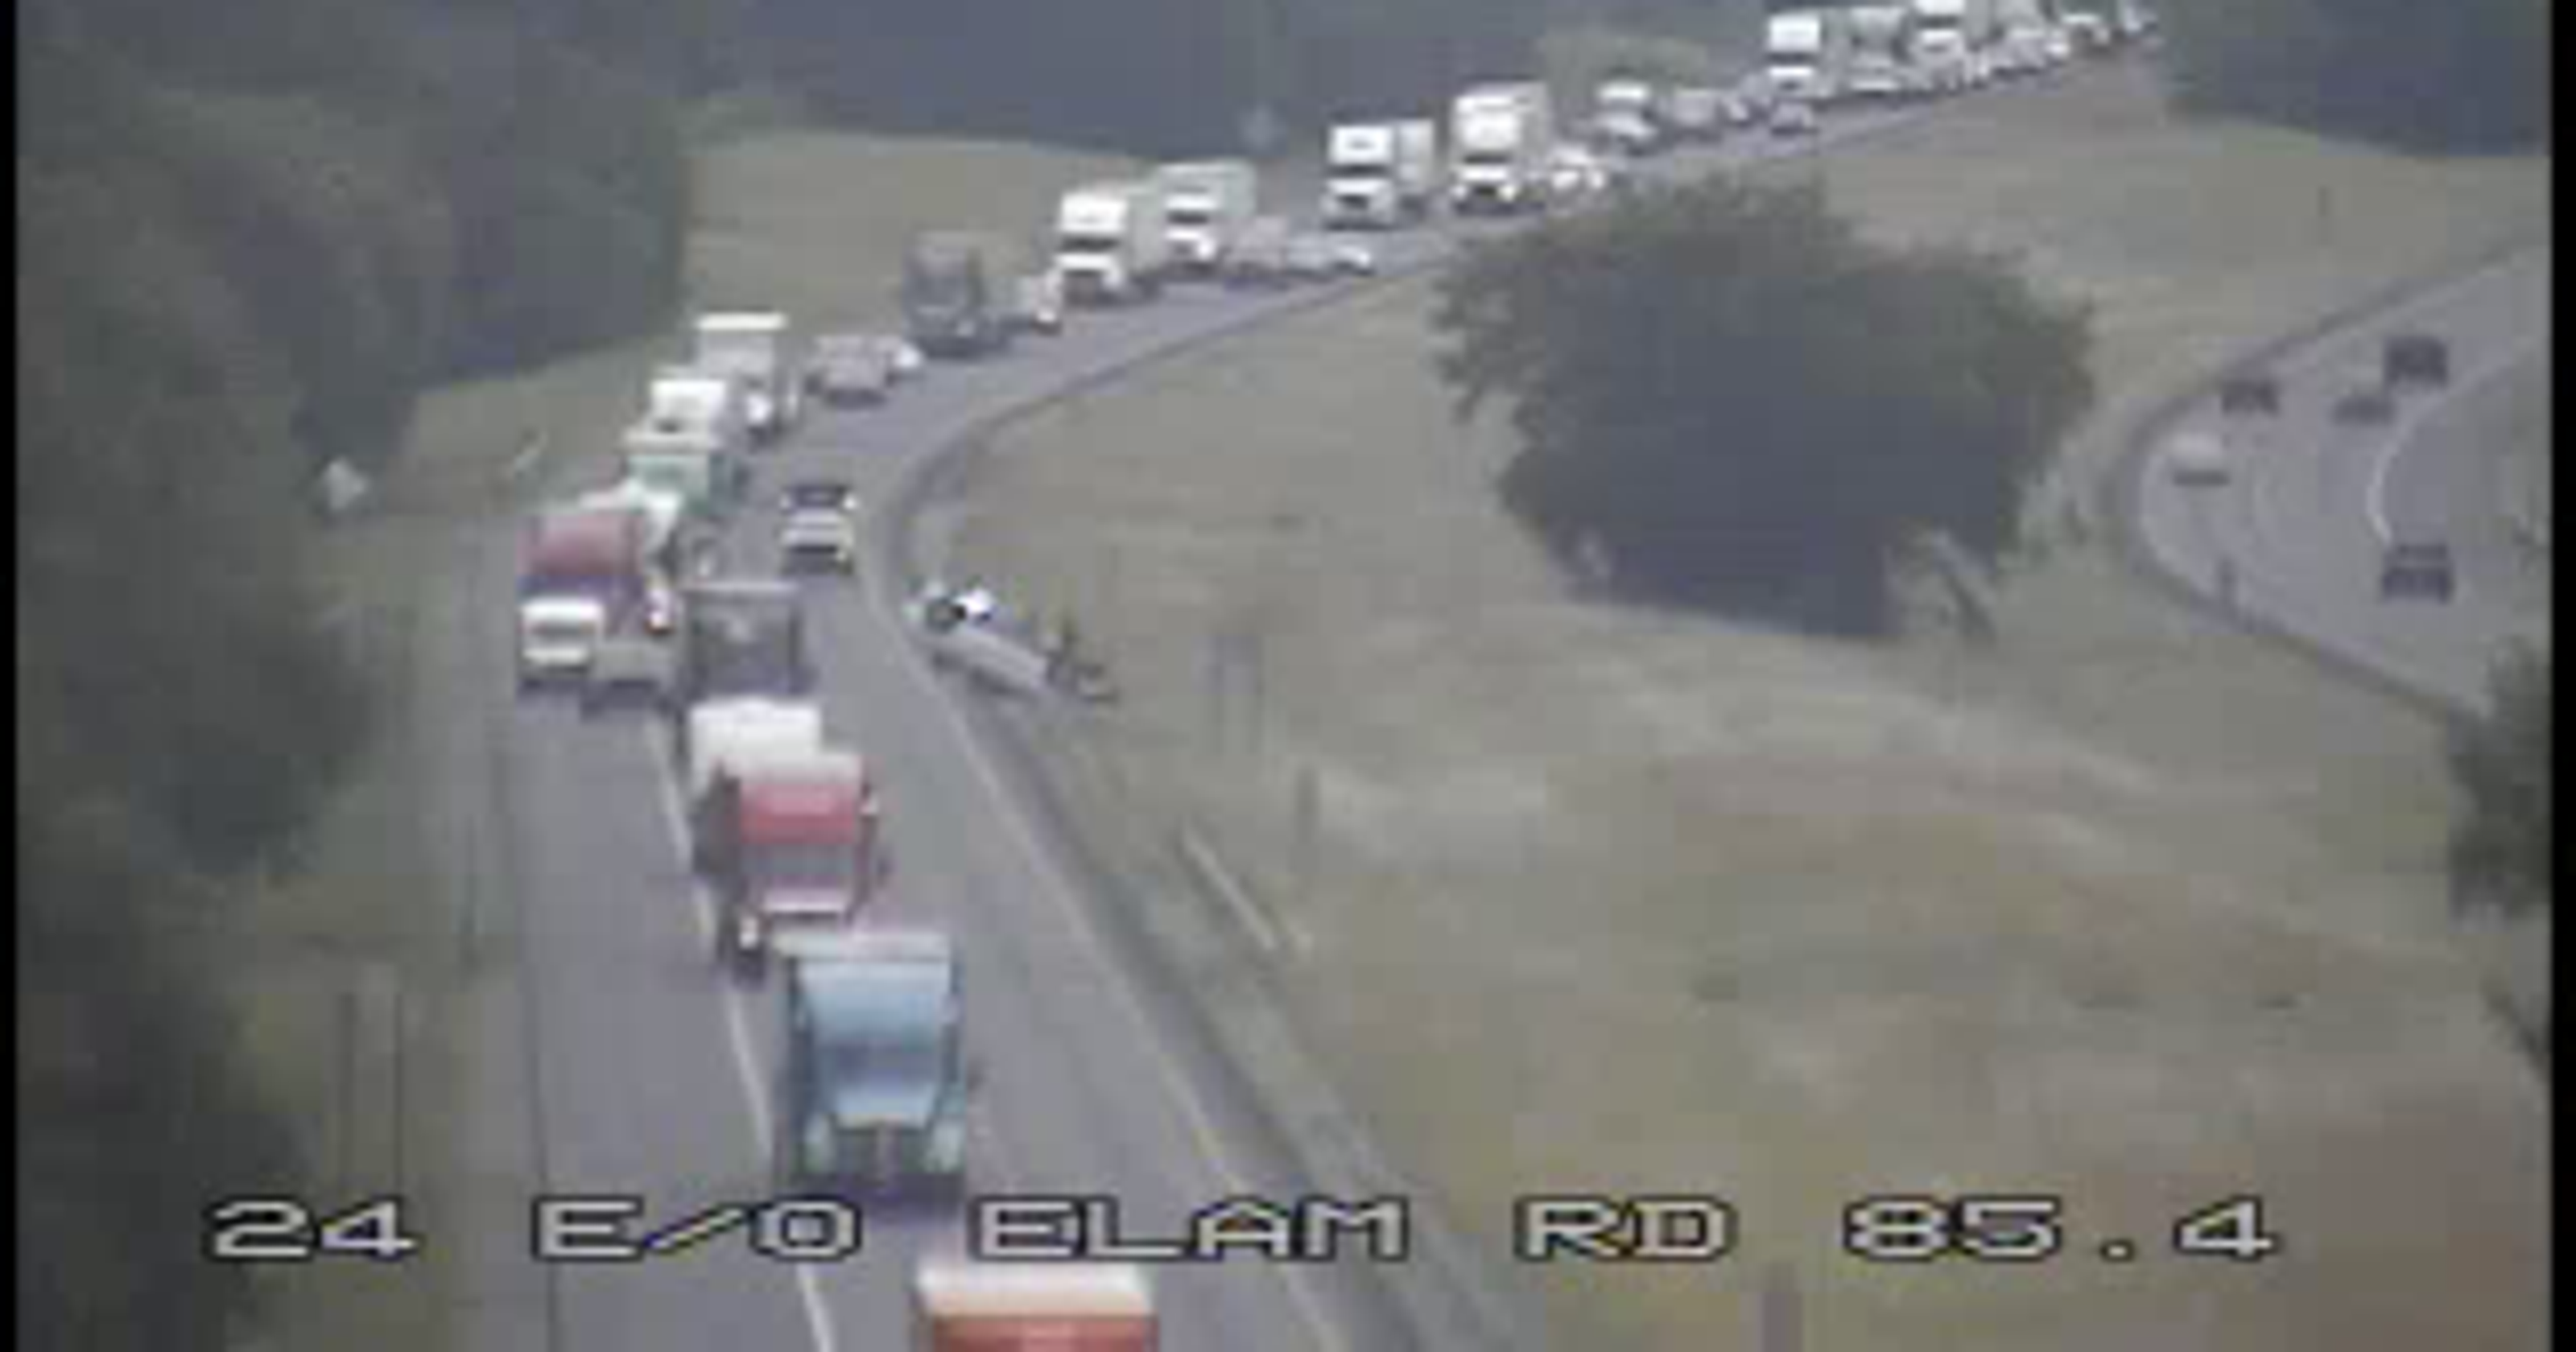 Overturned car causes delays on I-24 west near Murfreesboro